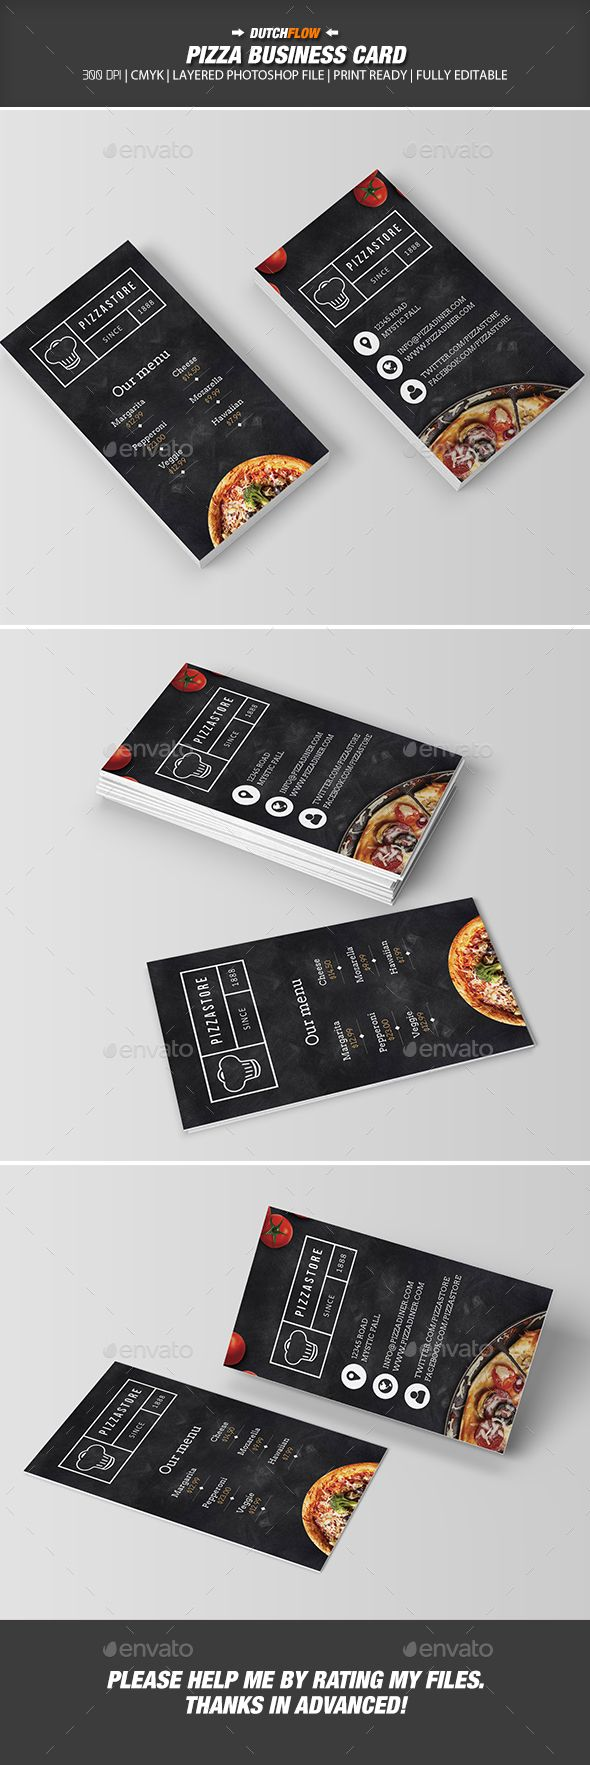 Pizza Business Card — Photoshop PSD #food #luxury • Available here → https://graphicriver.net/item/pizza-business-card/19276018?ref=pxcr